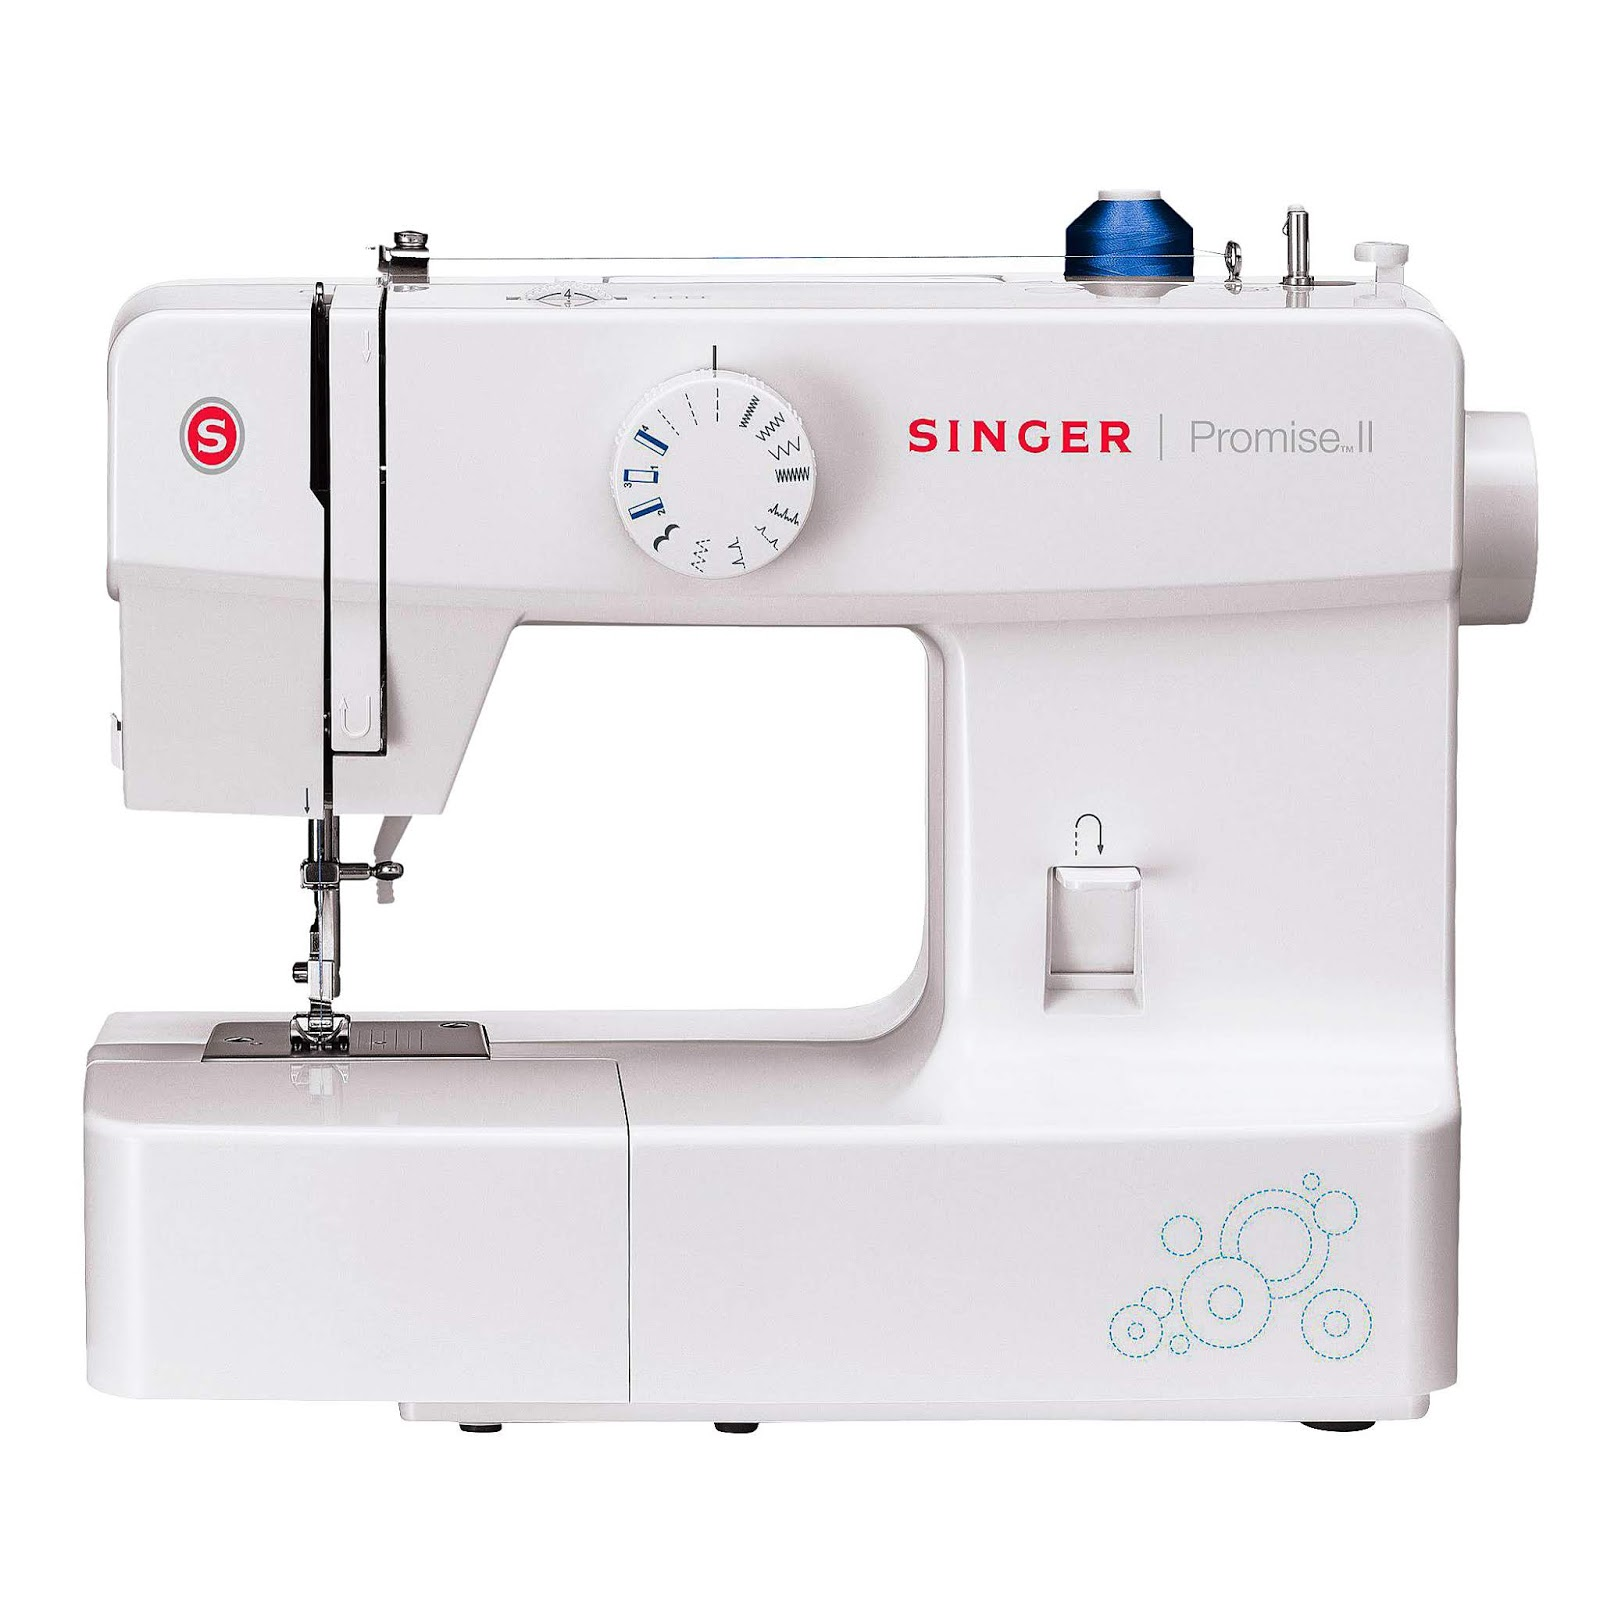 Singer Promise II Sewing Machine (1512)